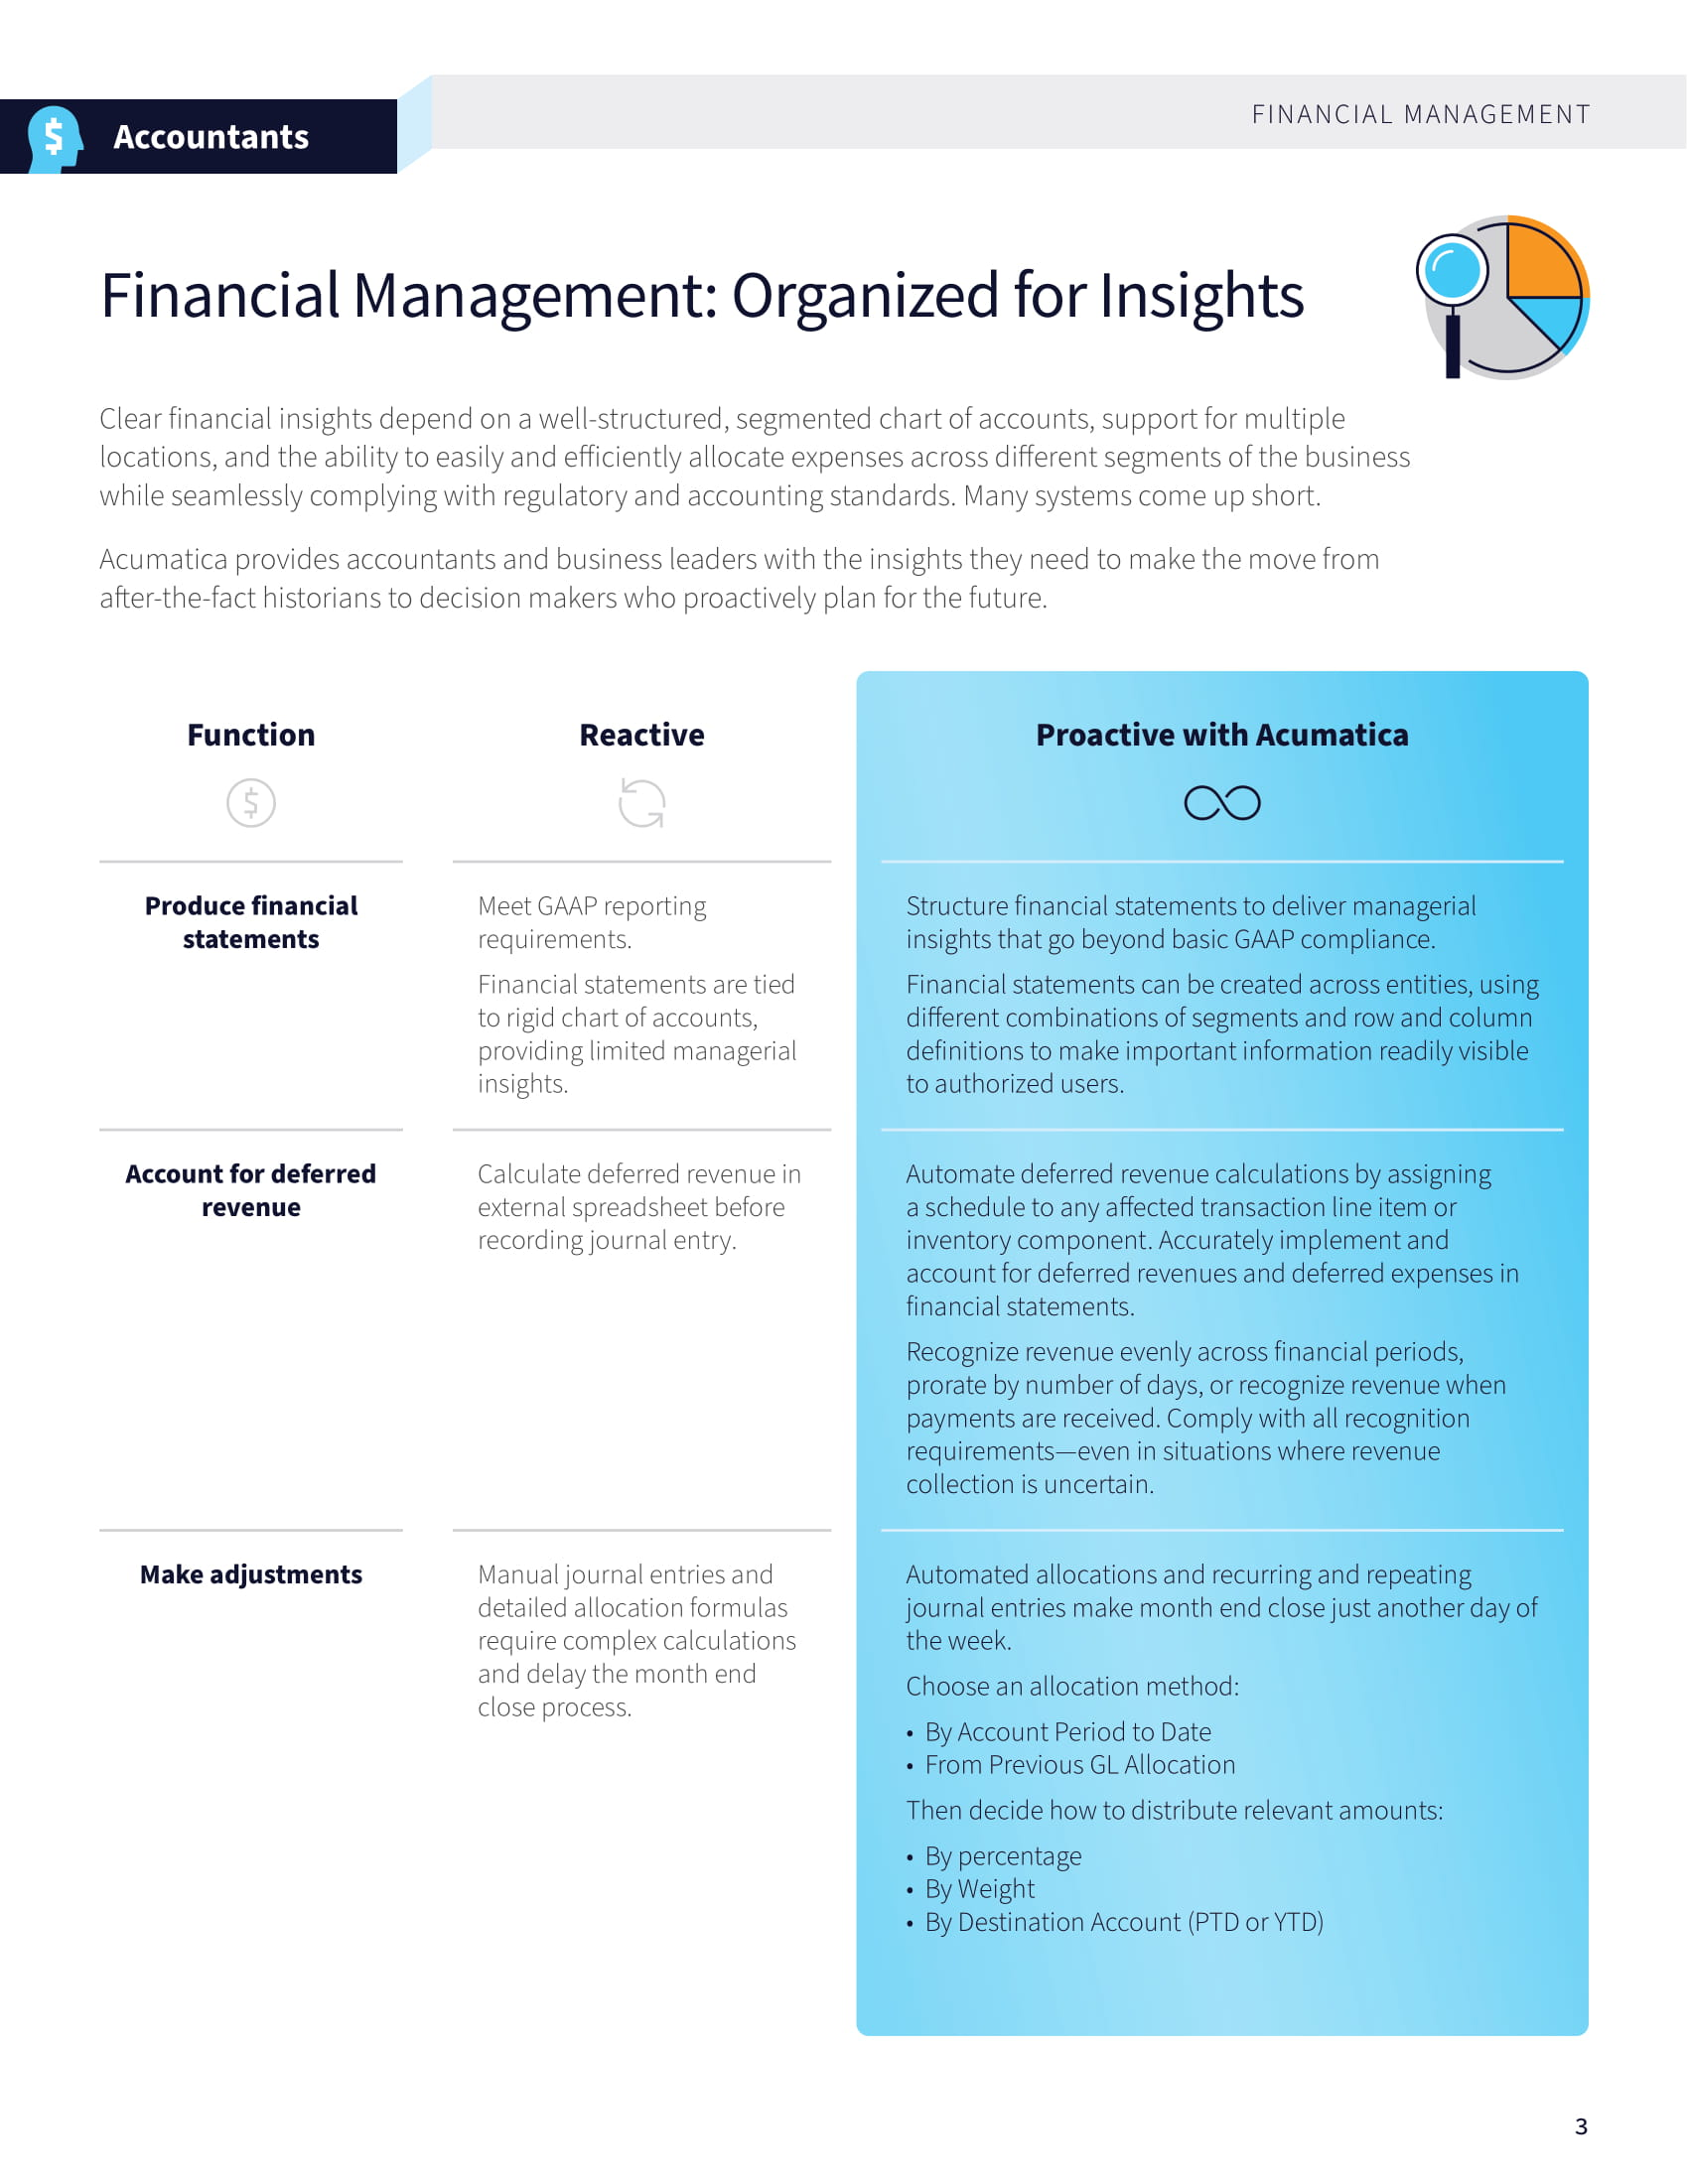 Become a Proactive Accountant with Cloud ERP, page 2